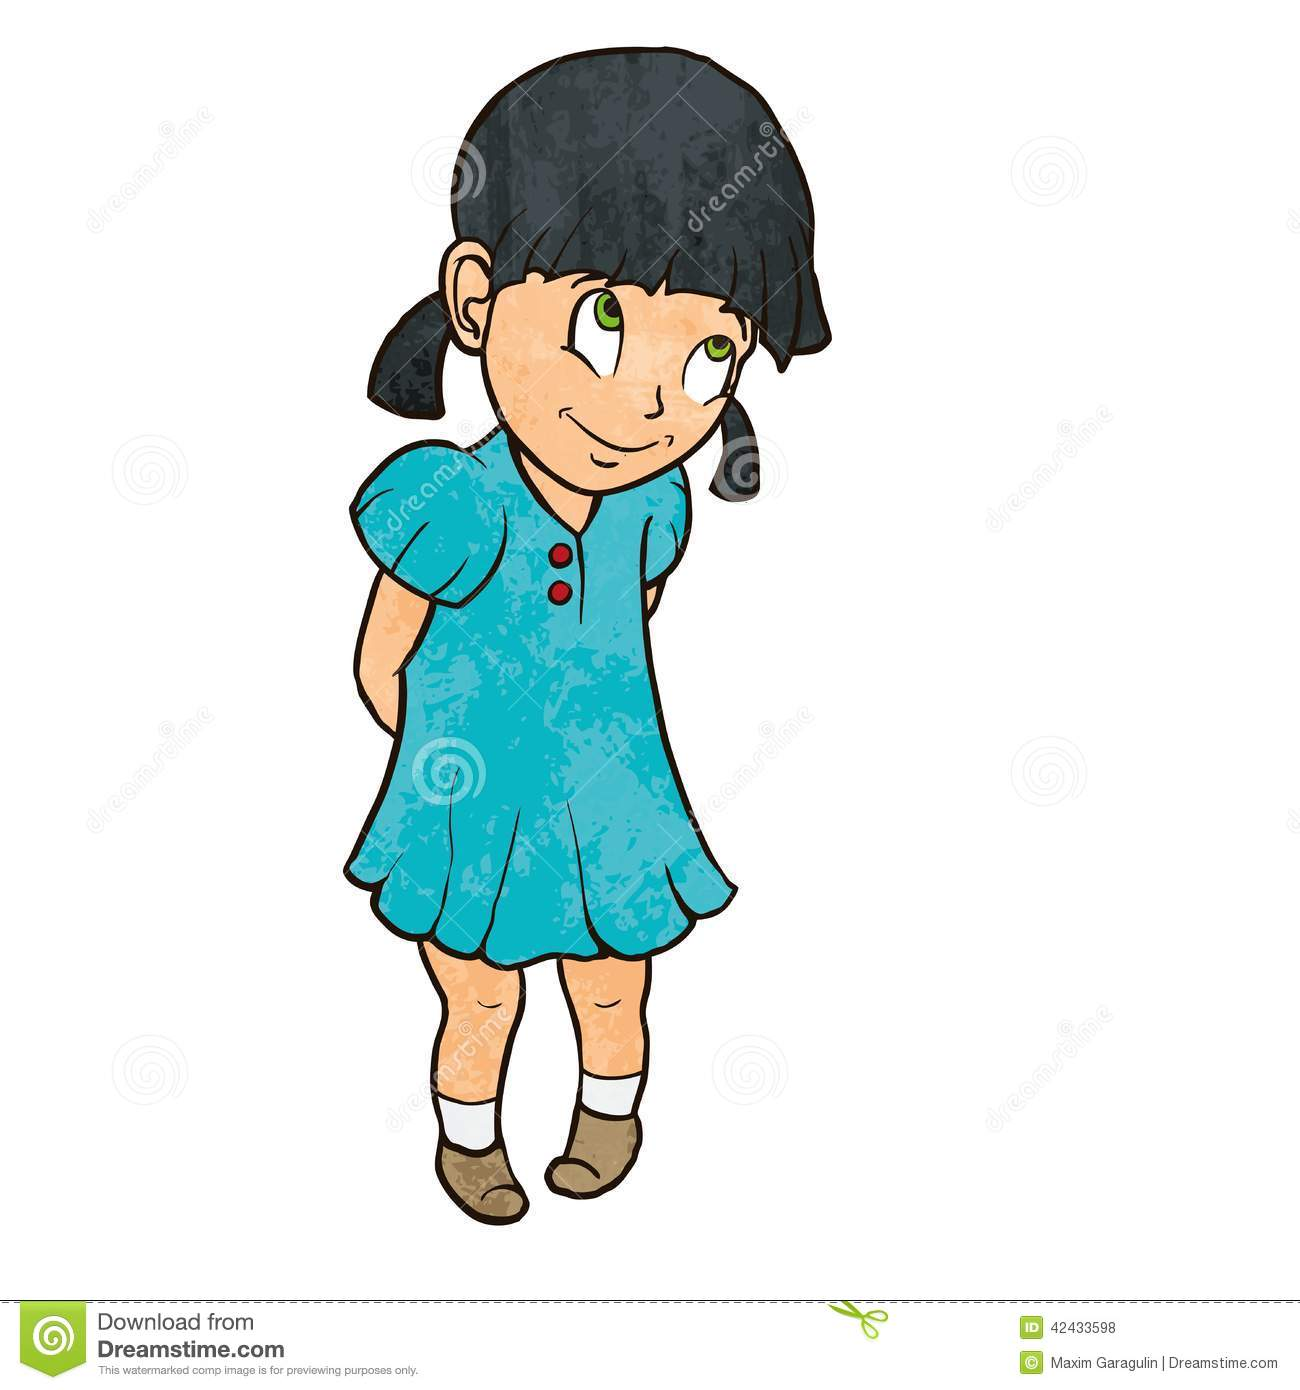 More similar stock images of ` Cute shy cheerful little girl in blue ...